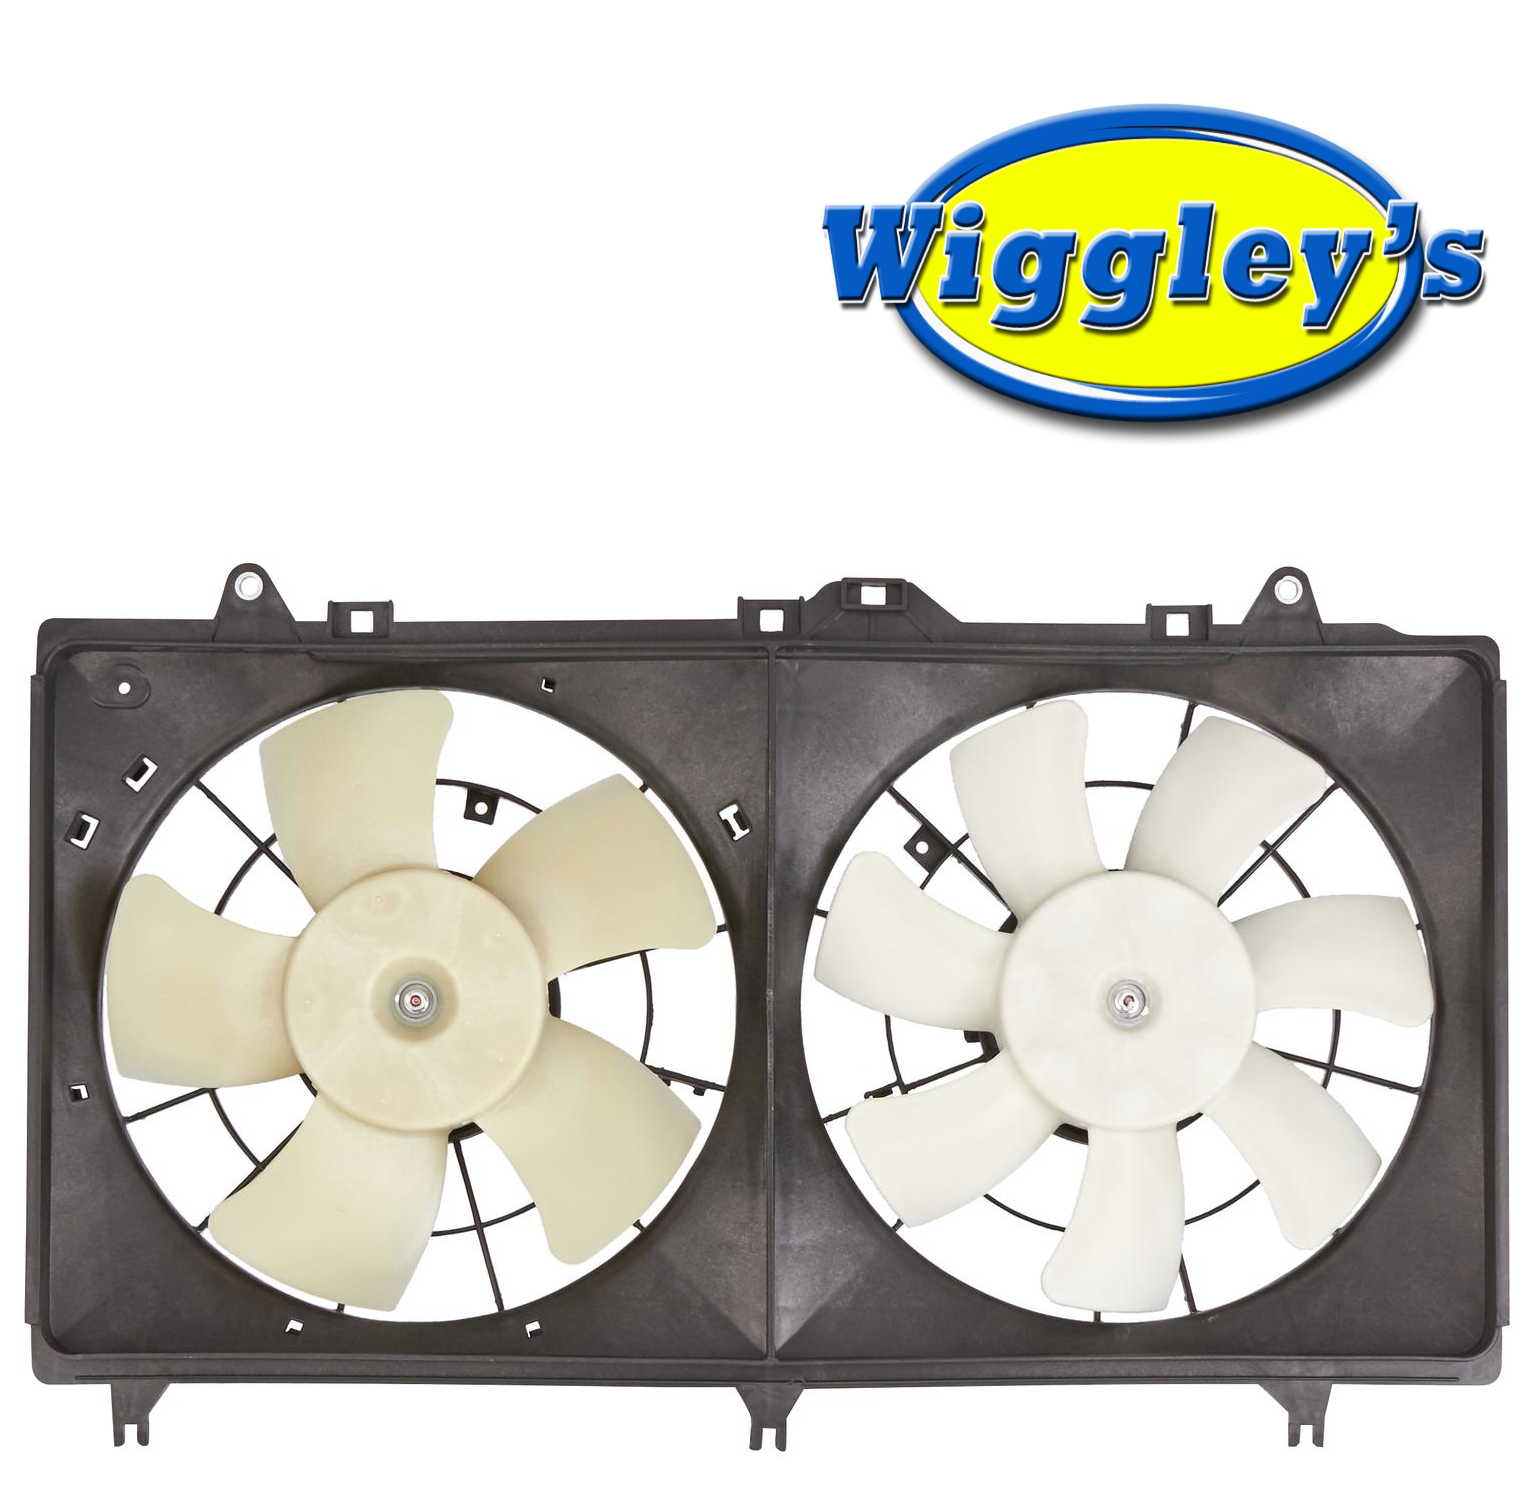 A/C DUEL FAN ASSEMBLY 620-579 FOR 12 13 14 15 CHEVROLET CAMERO 3.6L V6